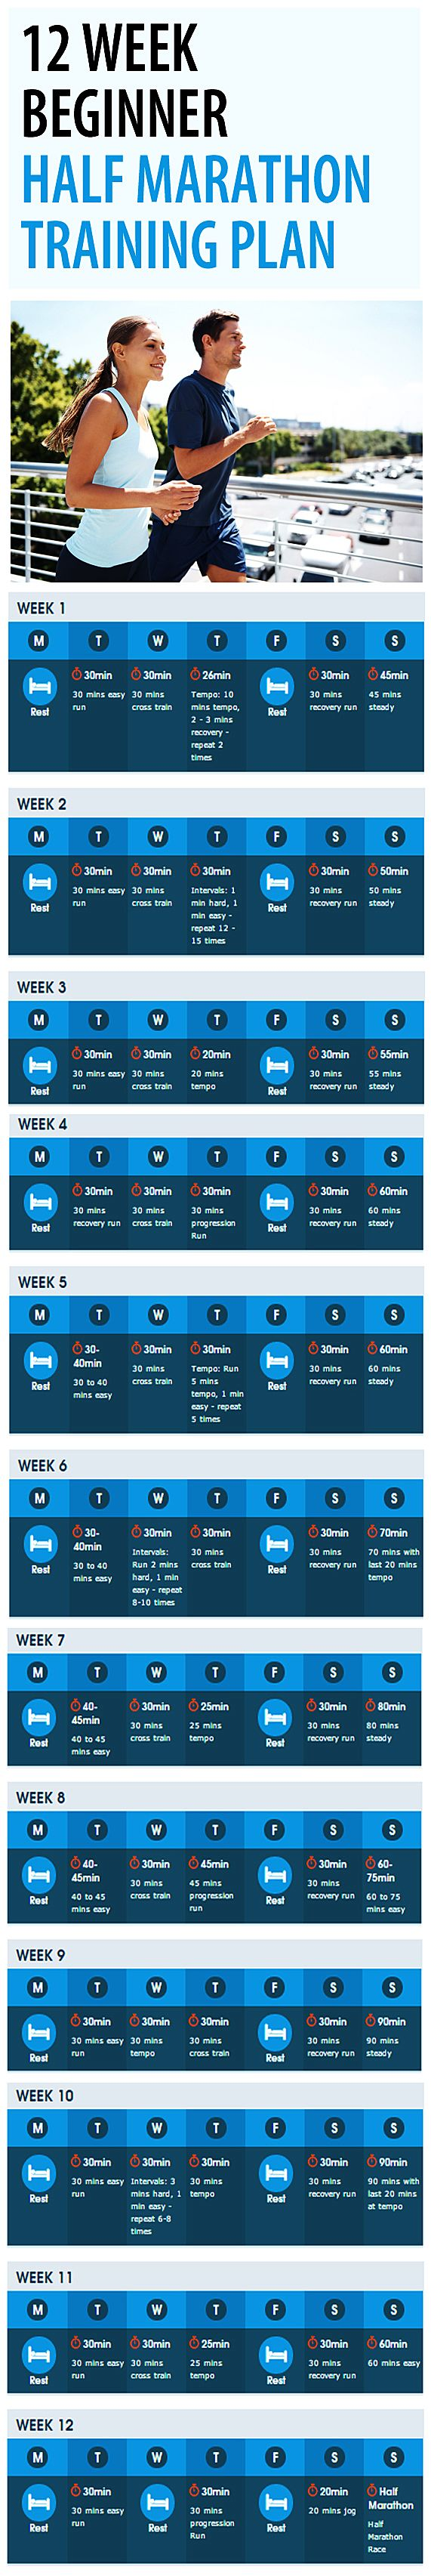 12 WEEK BEGINNER HALF MARATHON TRAINING PLAN. Join our Half Marathon Training… http://shop.nanorunner.com